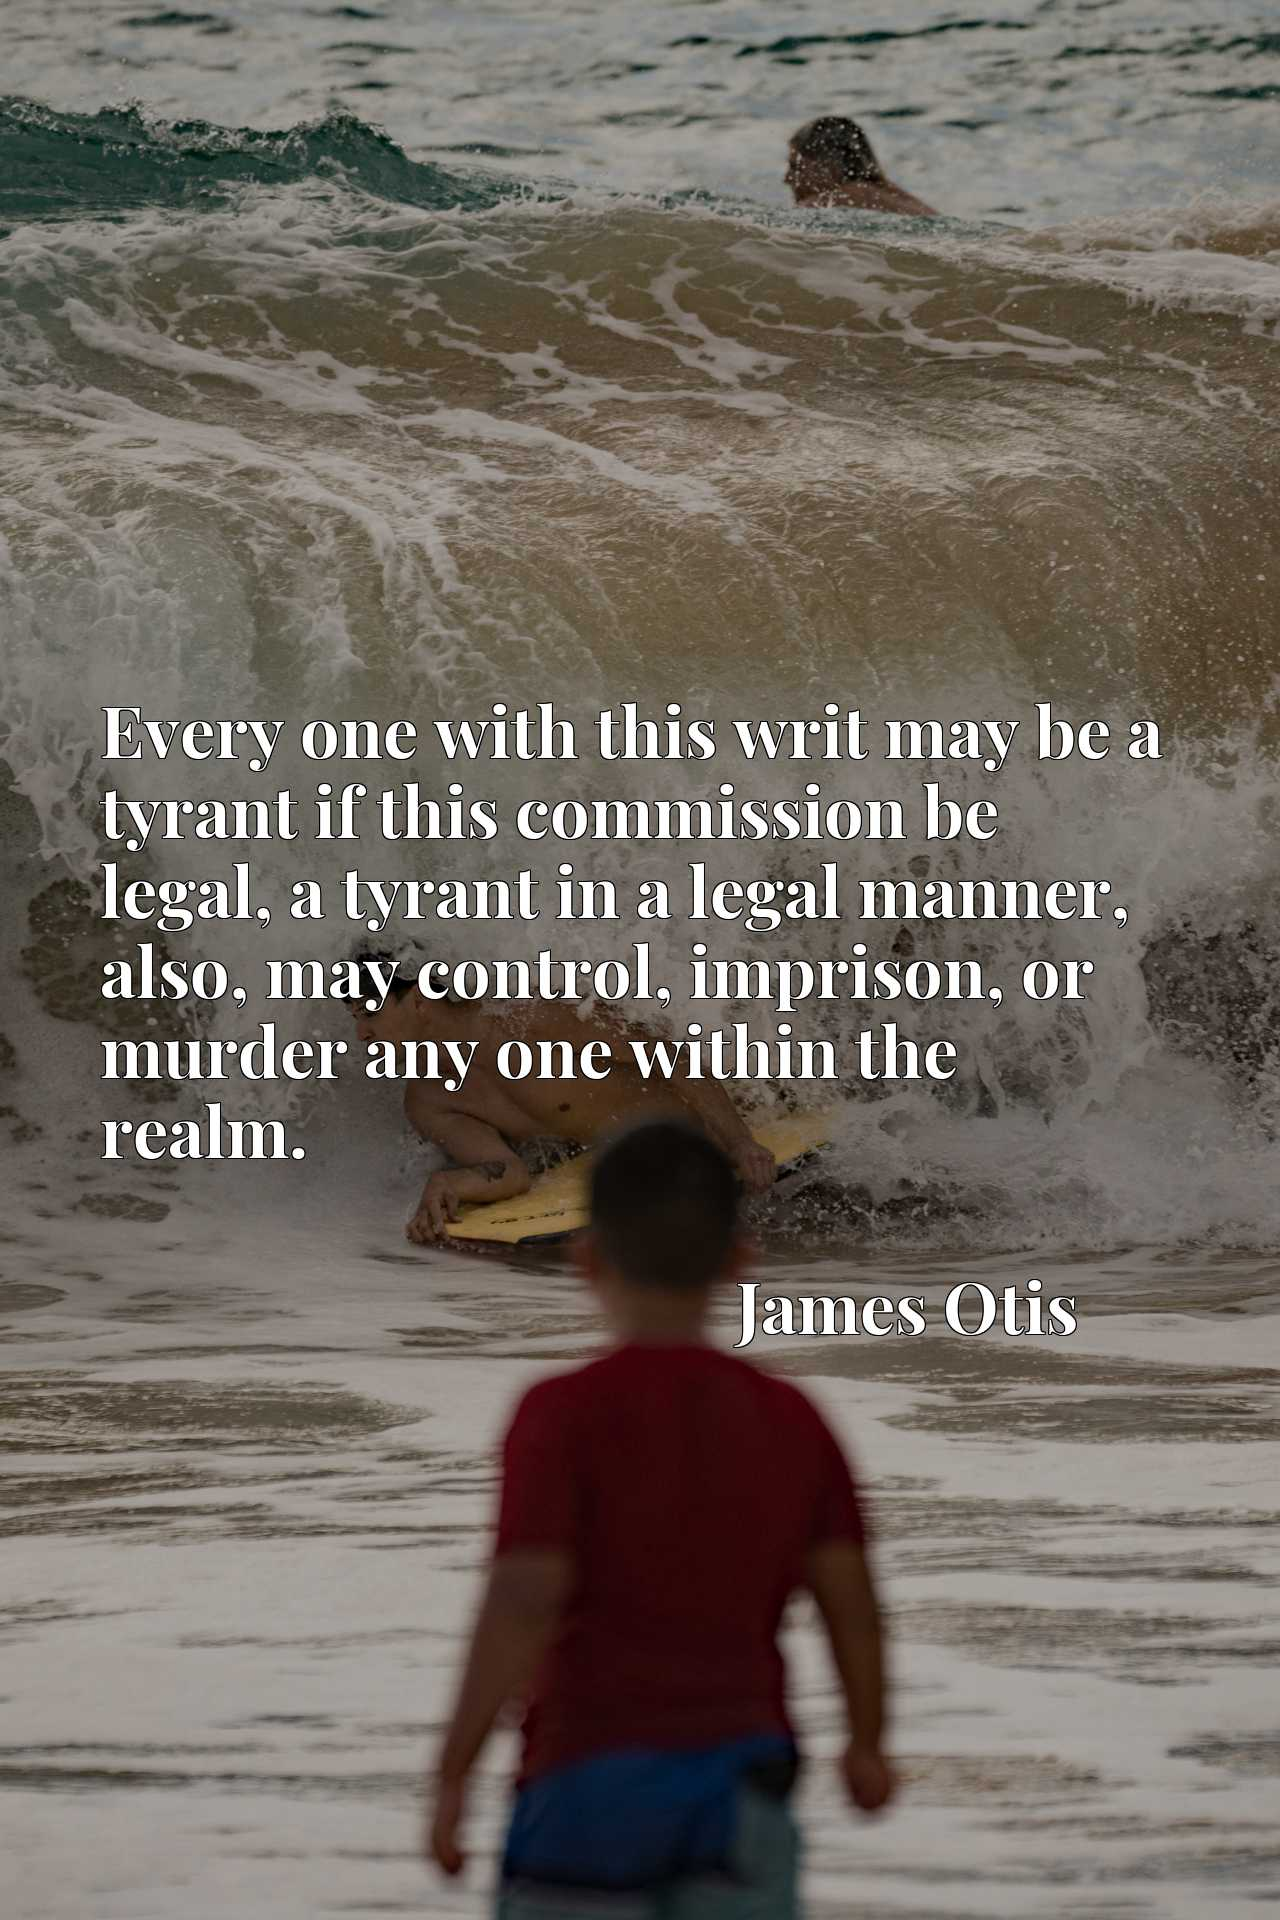 Quote Picture :Every one with this writ may be a tyrant if this commission be legal, a tyrant in a legal manner, also, may control, imprison, or murder any one within the realm.